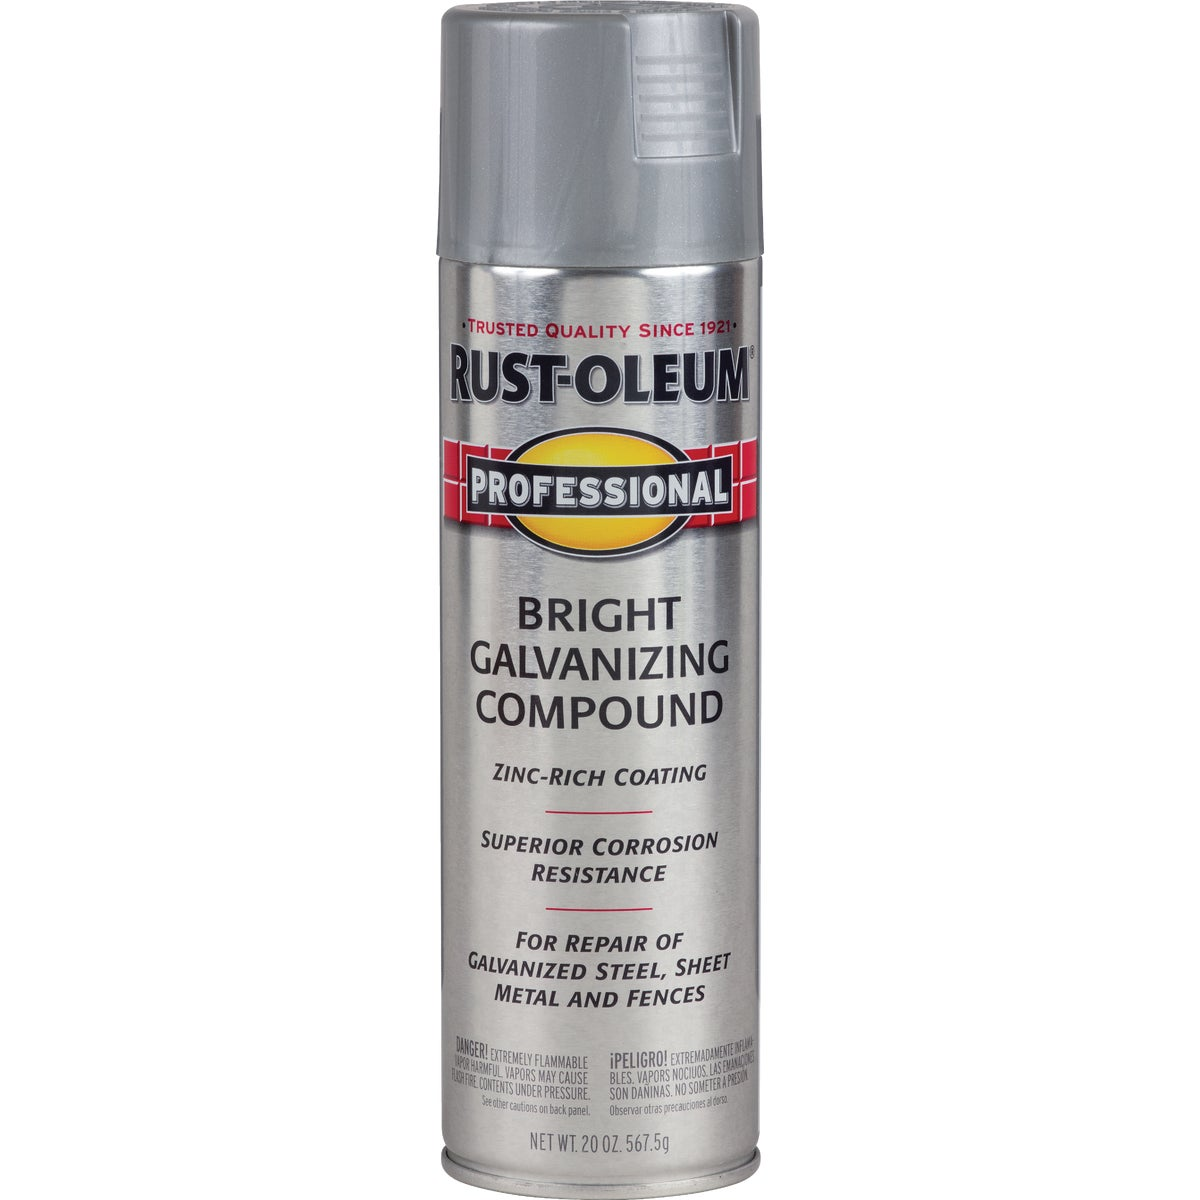 BRT GALV SPRAY COMPOUND - 7584-838 by Rustoleum